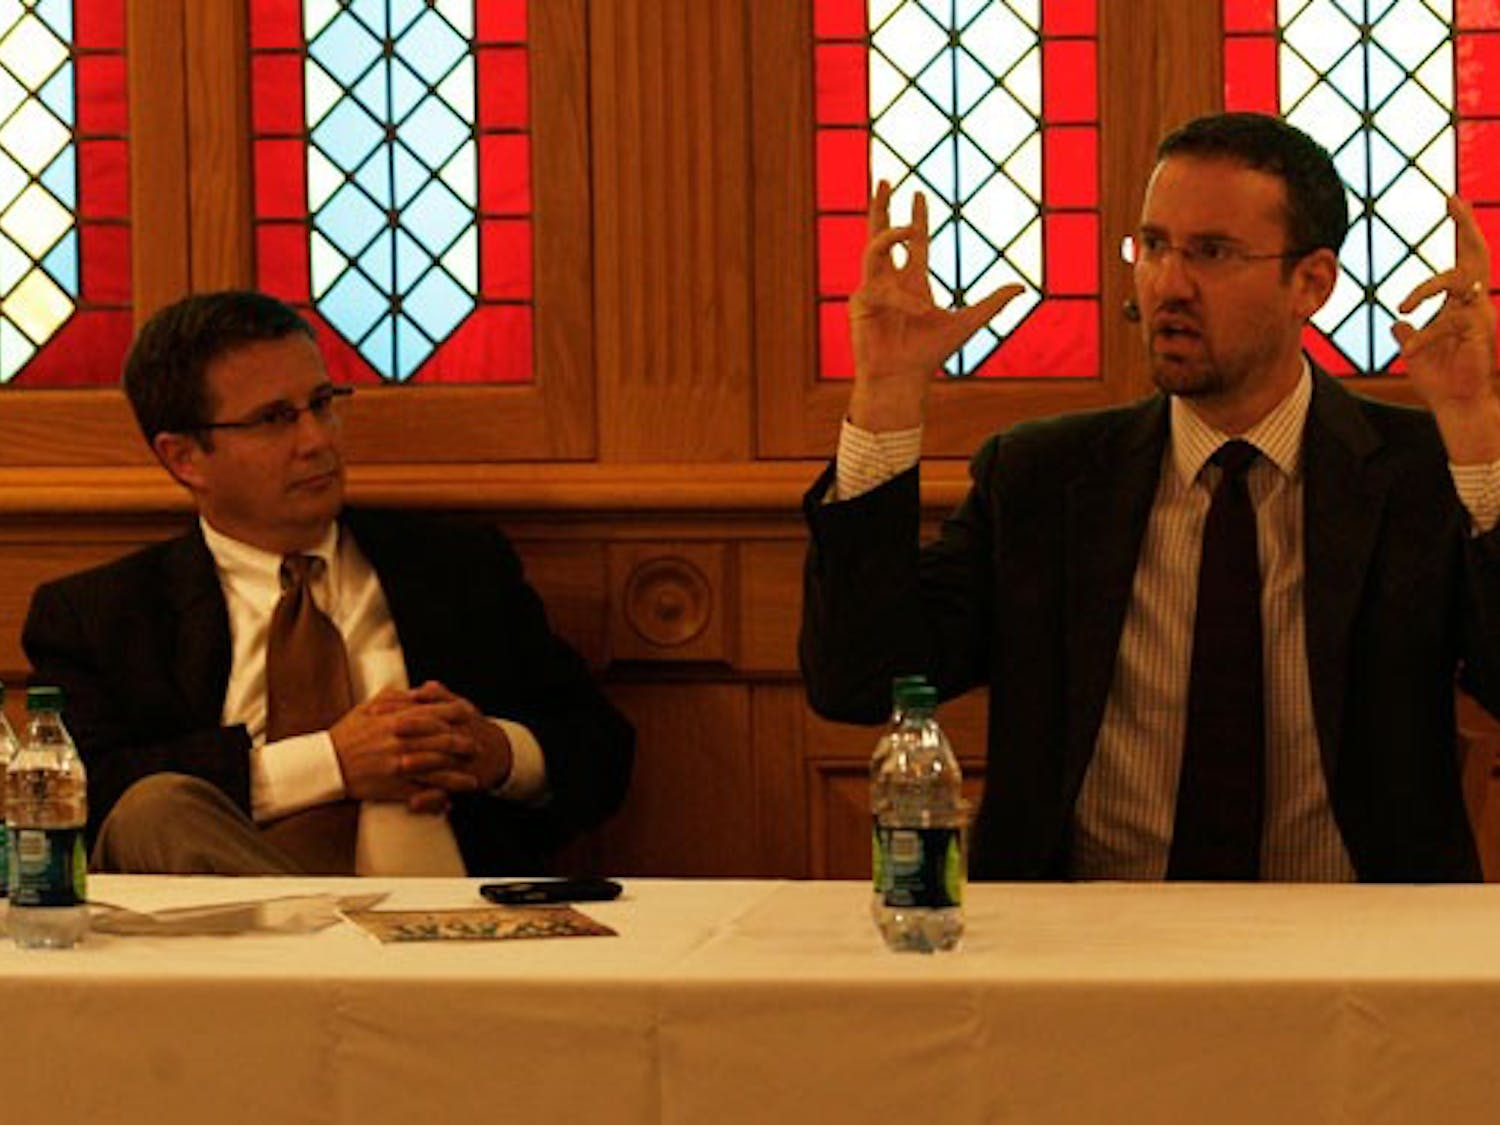 Moderator Peter Feaver and Will McCants, research analyst at the Center for Strategic Studies at CNA Analysis and Solutions, take part in a debate discussing the War on Terror in the Old Trinity Room Monday.